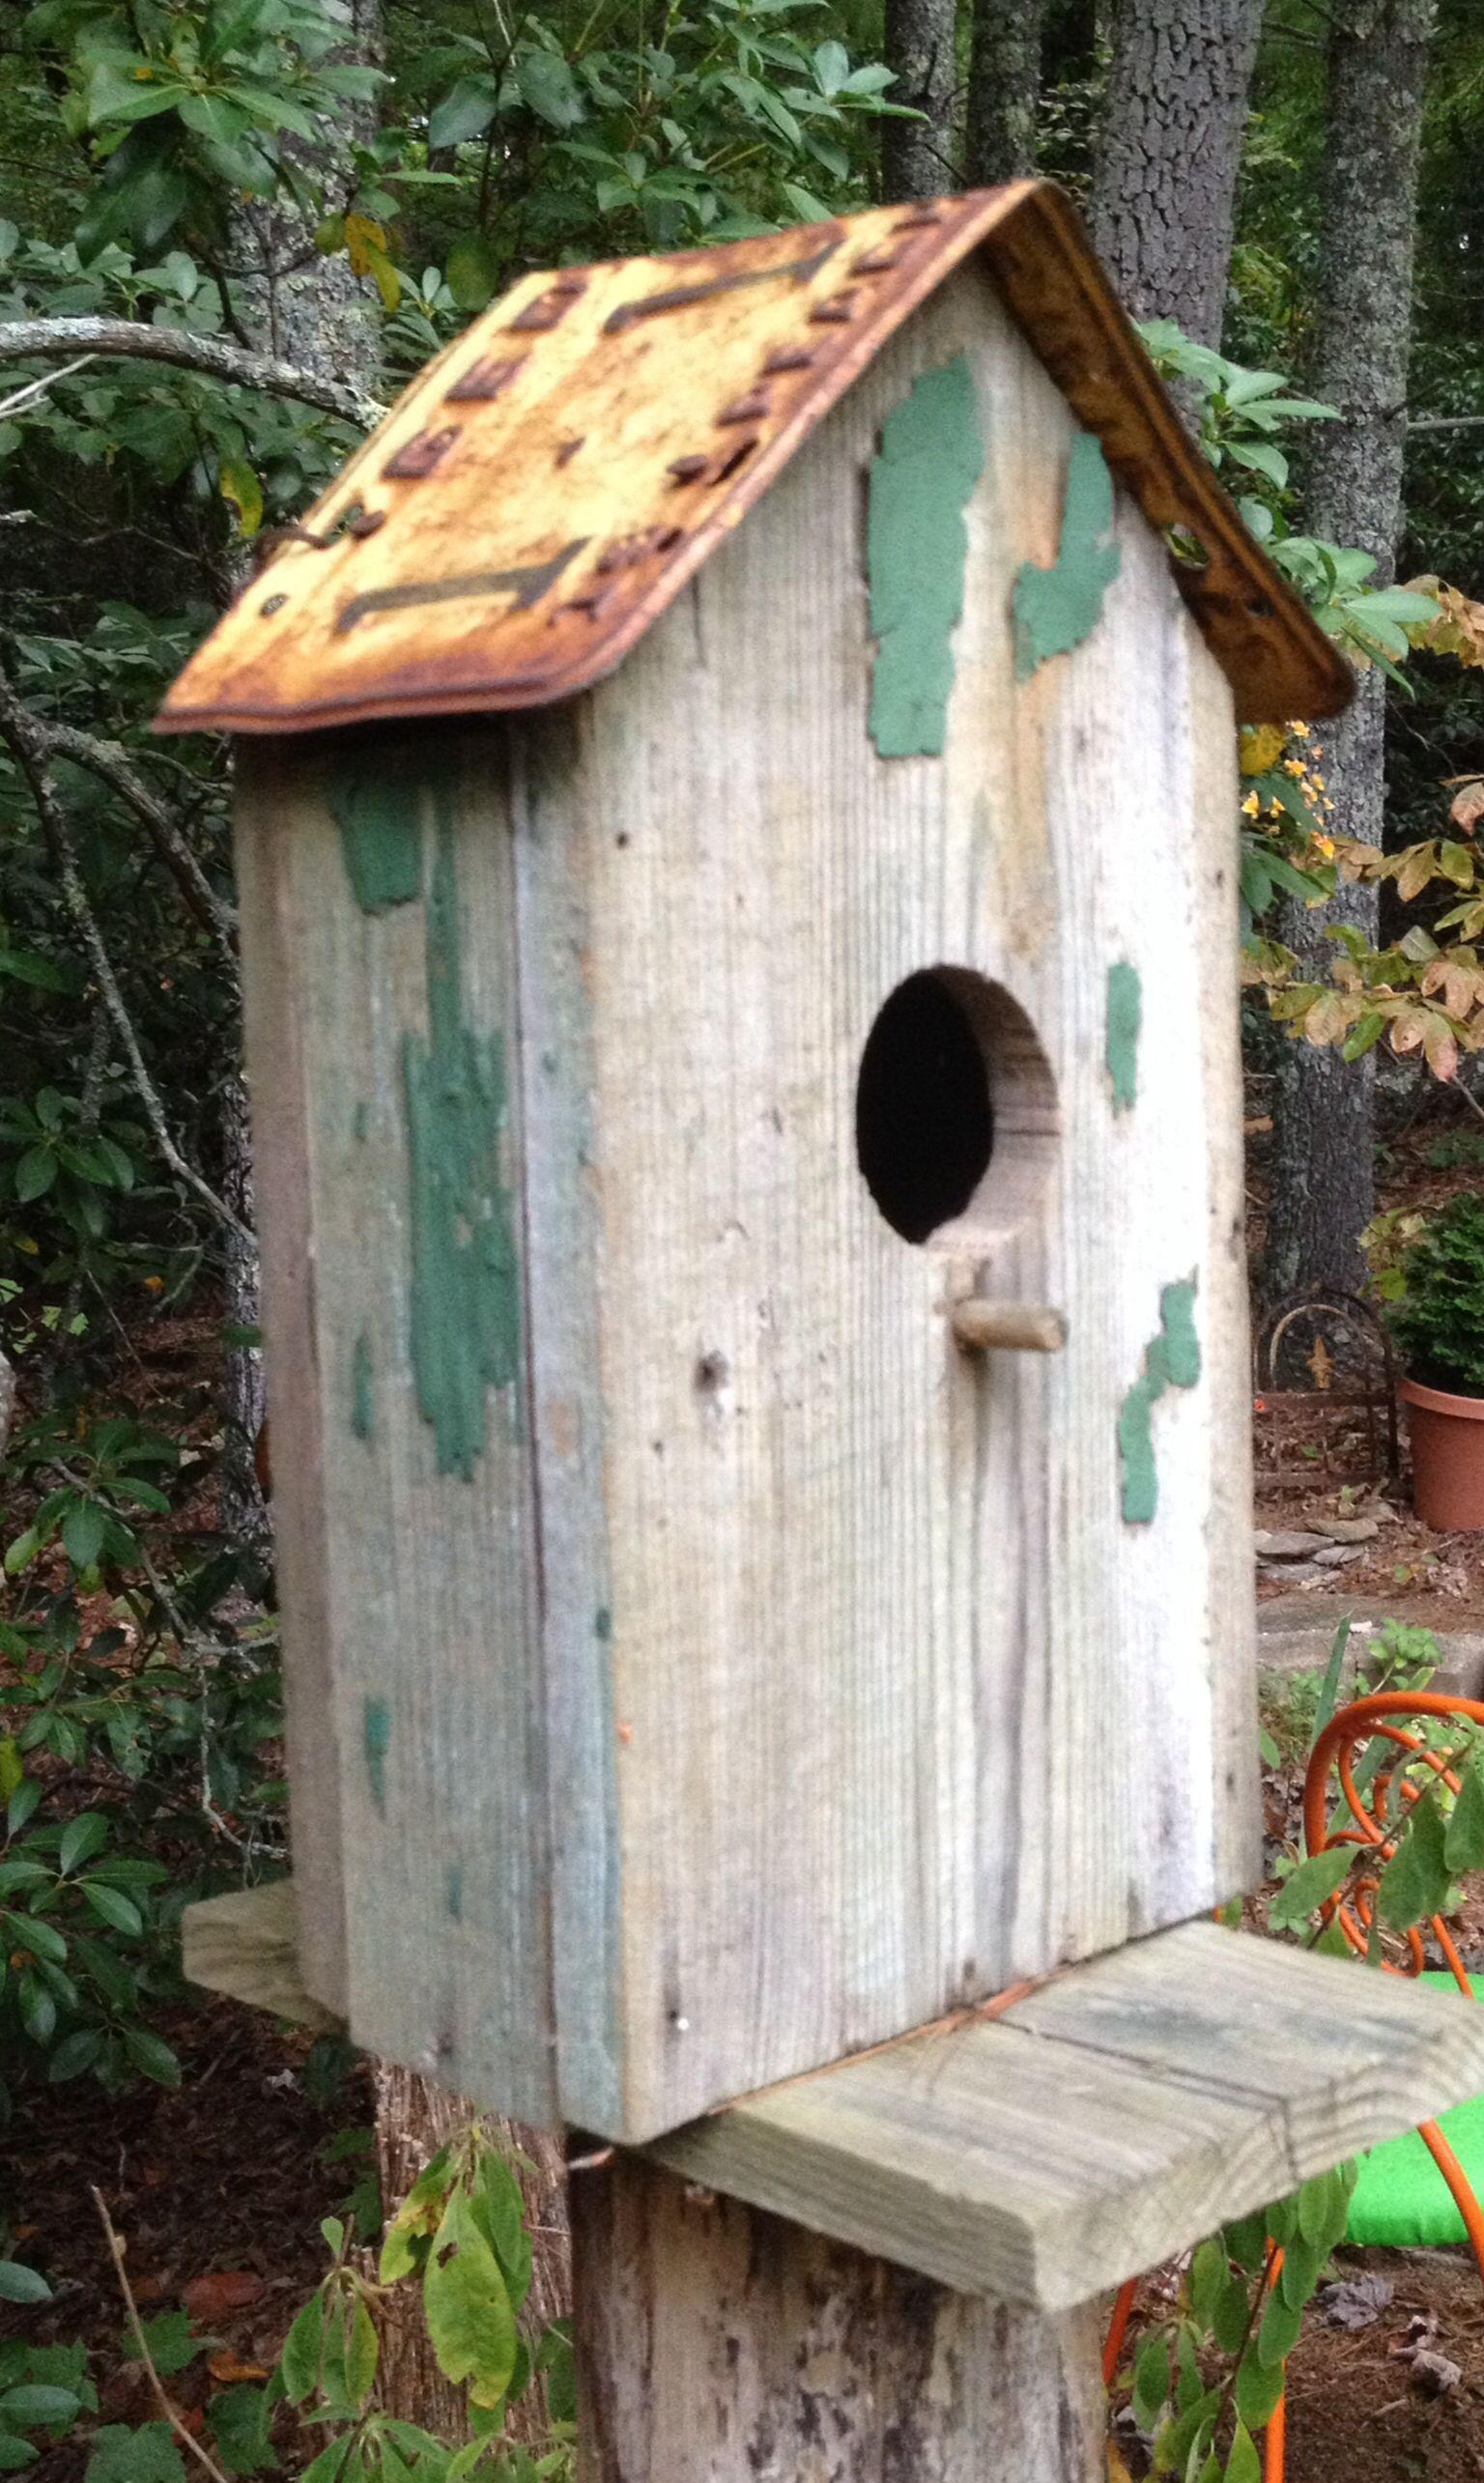 Rustic Birdhouse With License Plate Roof